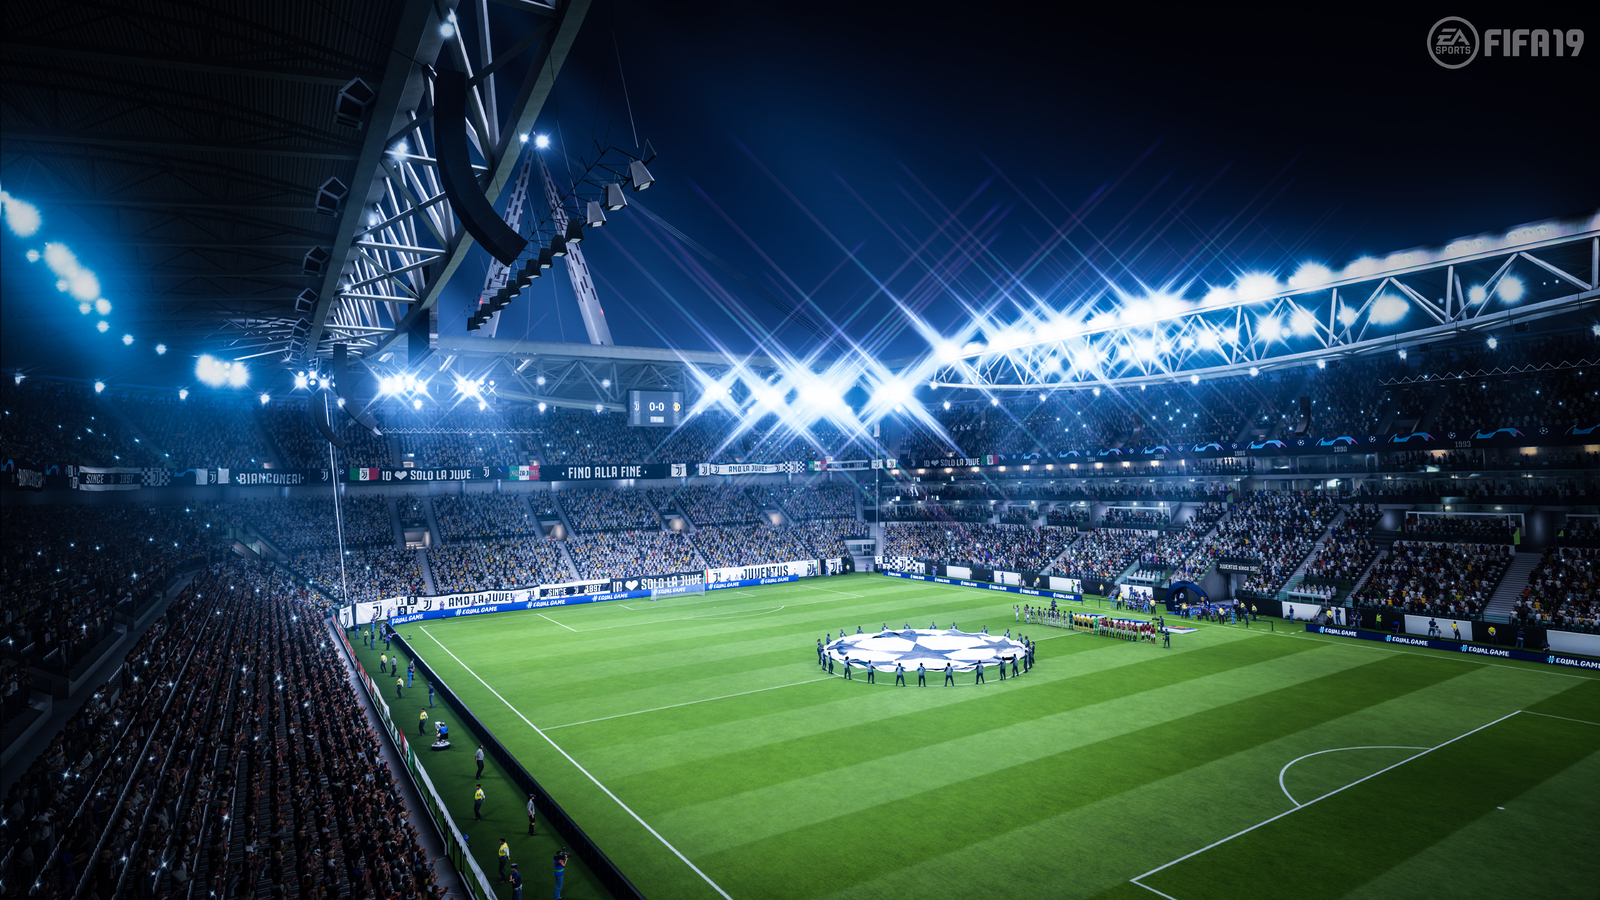 FIFA 19 for Xbox One image